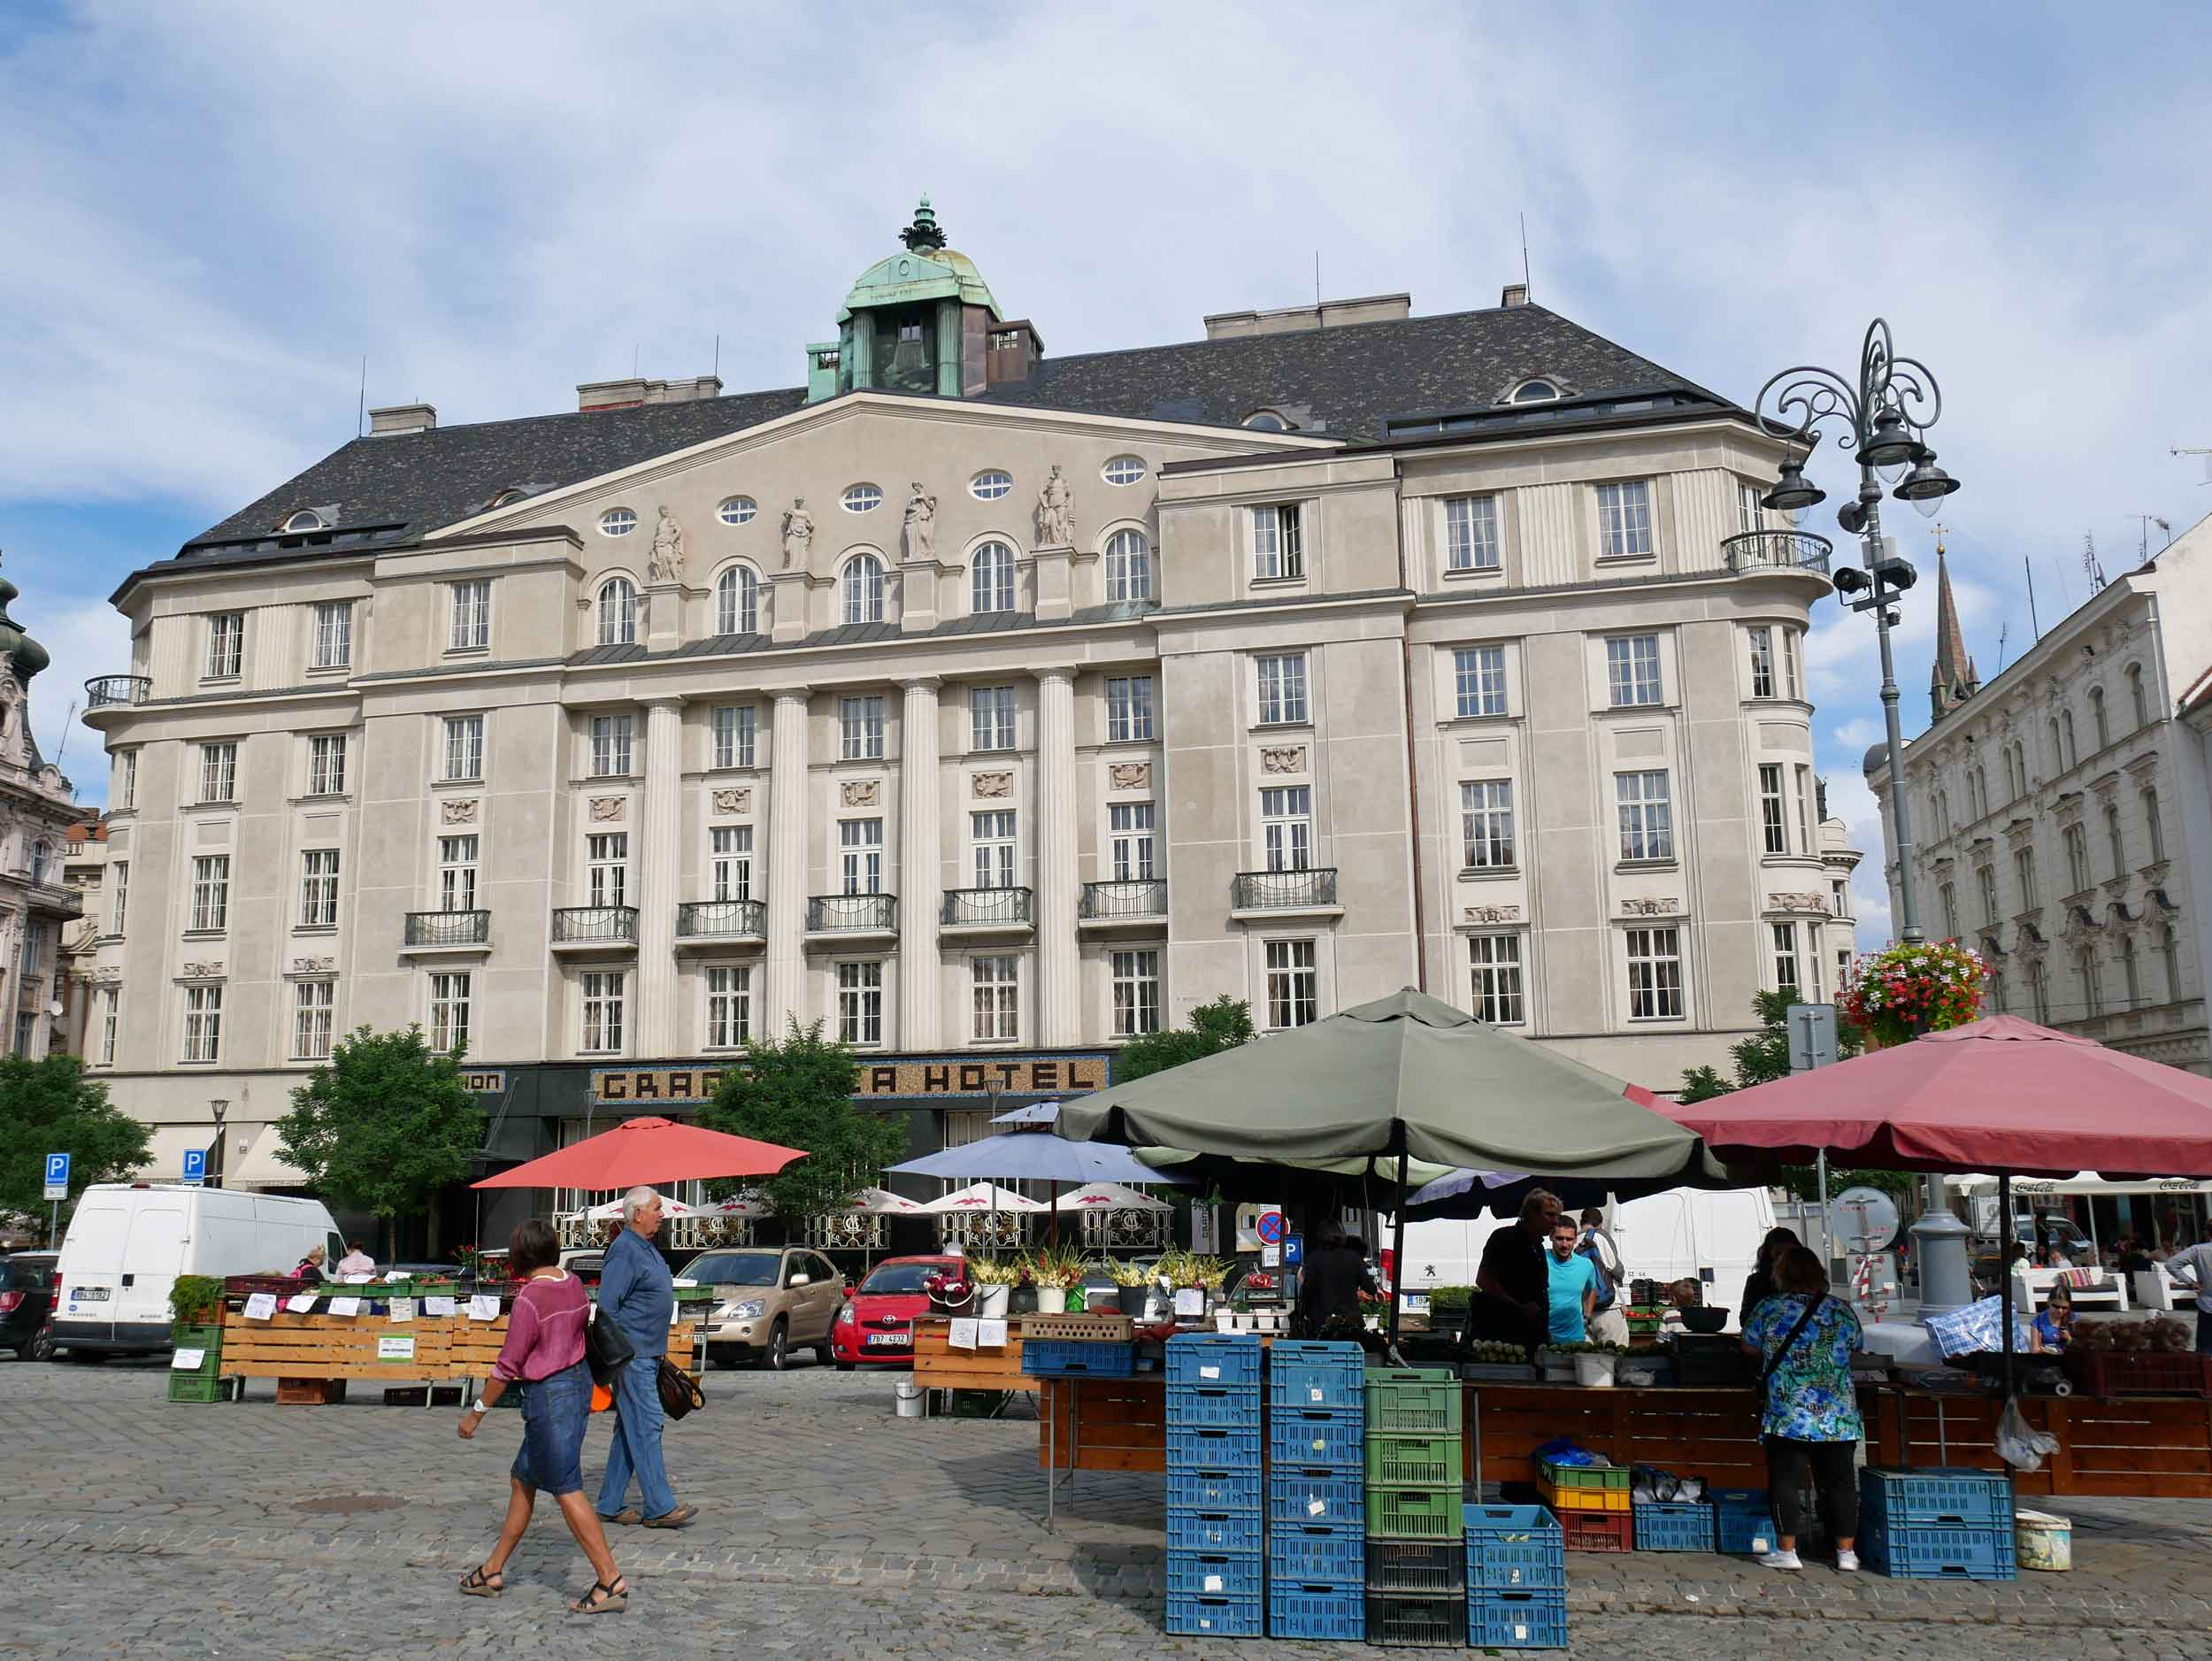 Cabbage Market Square in Brno happened to be having a local farmers' market the day we visited!